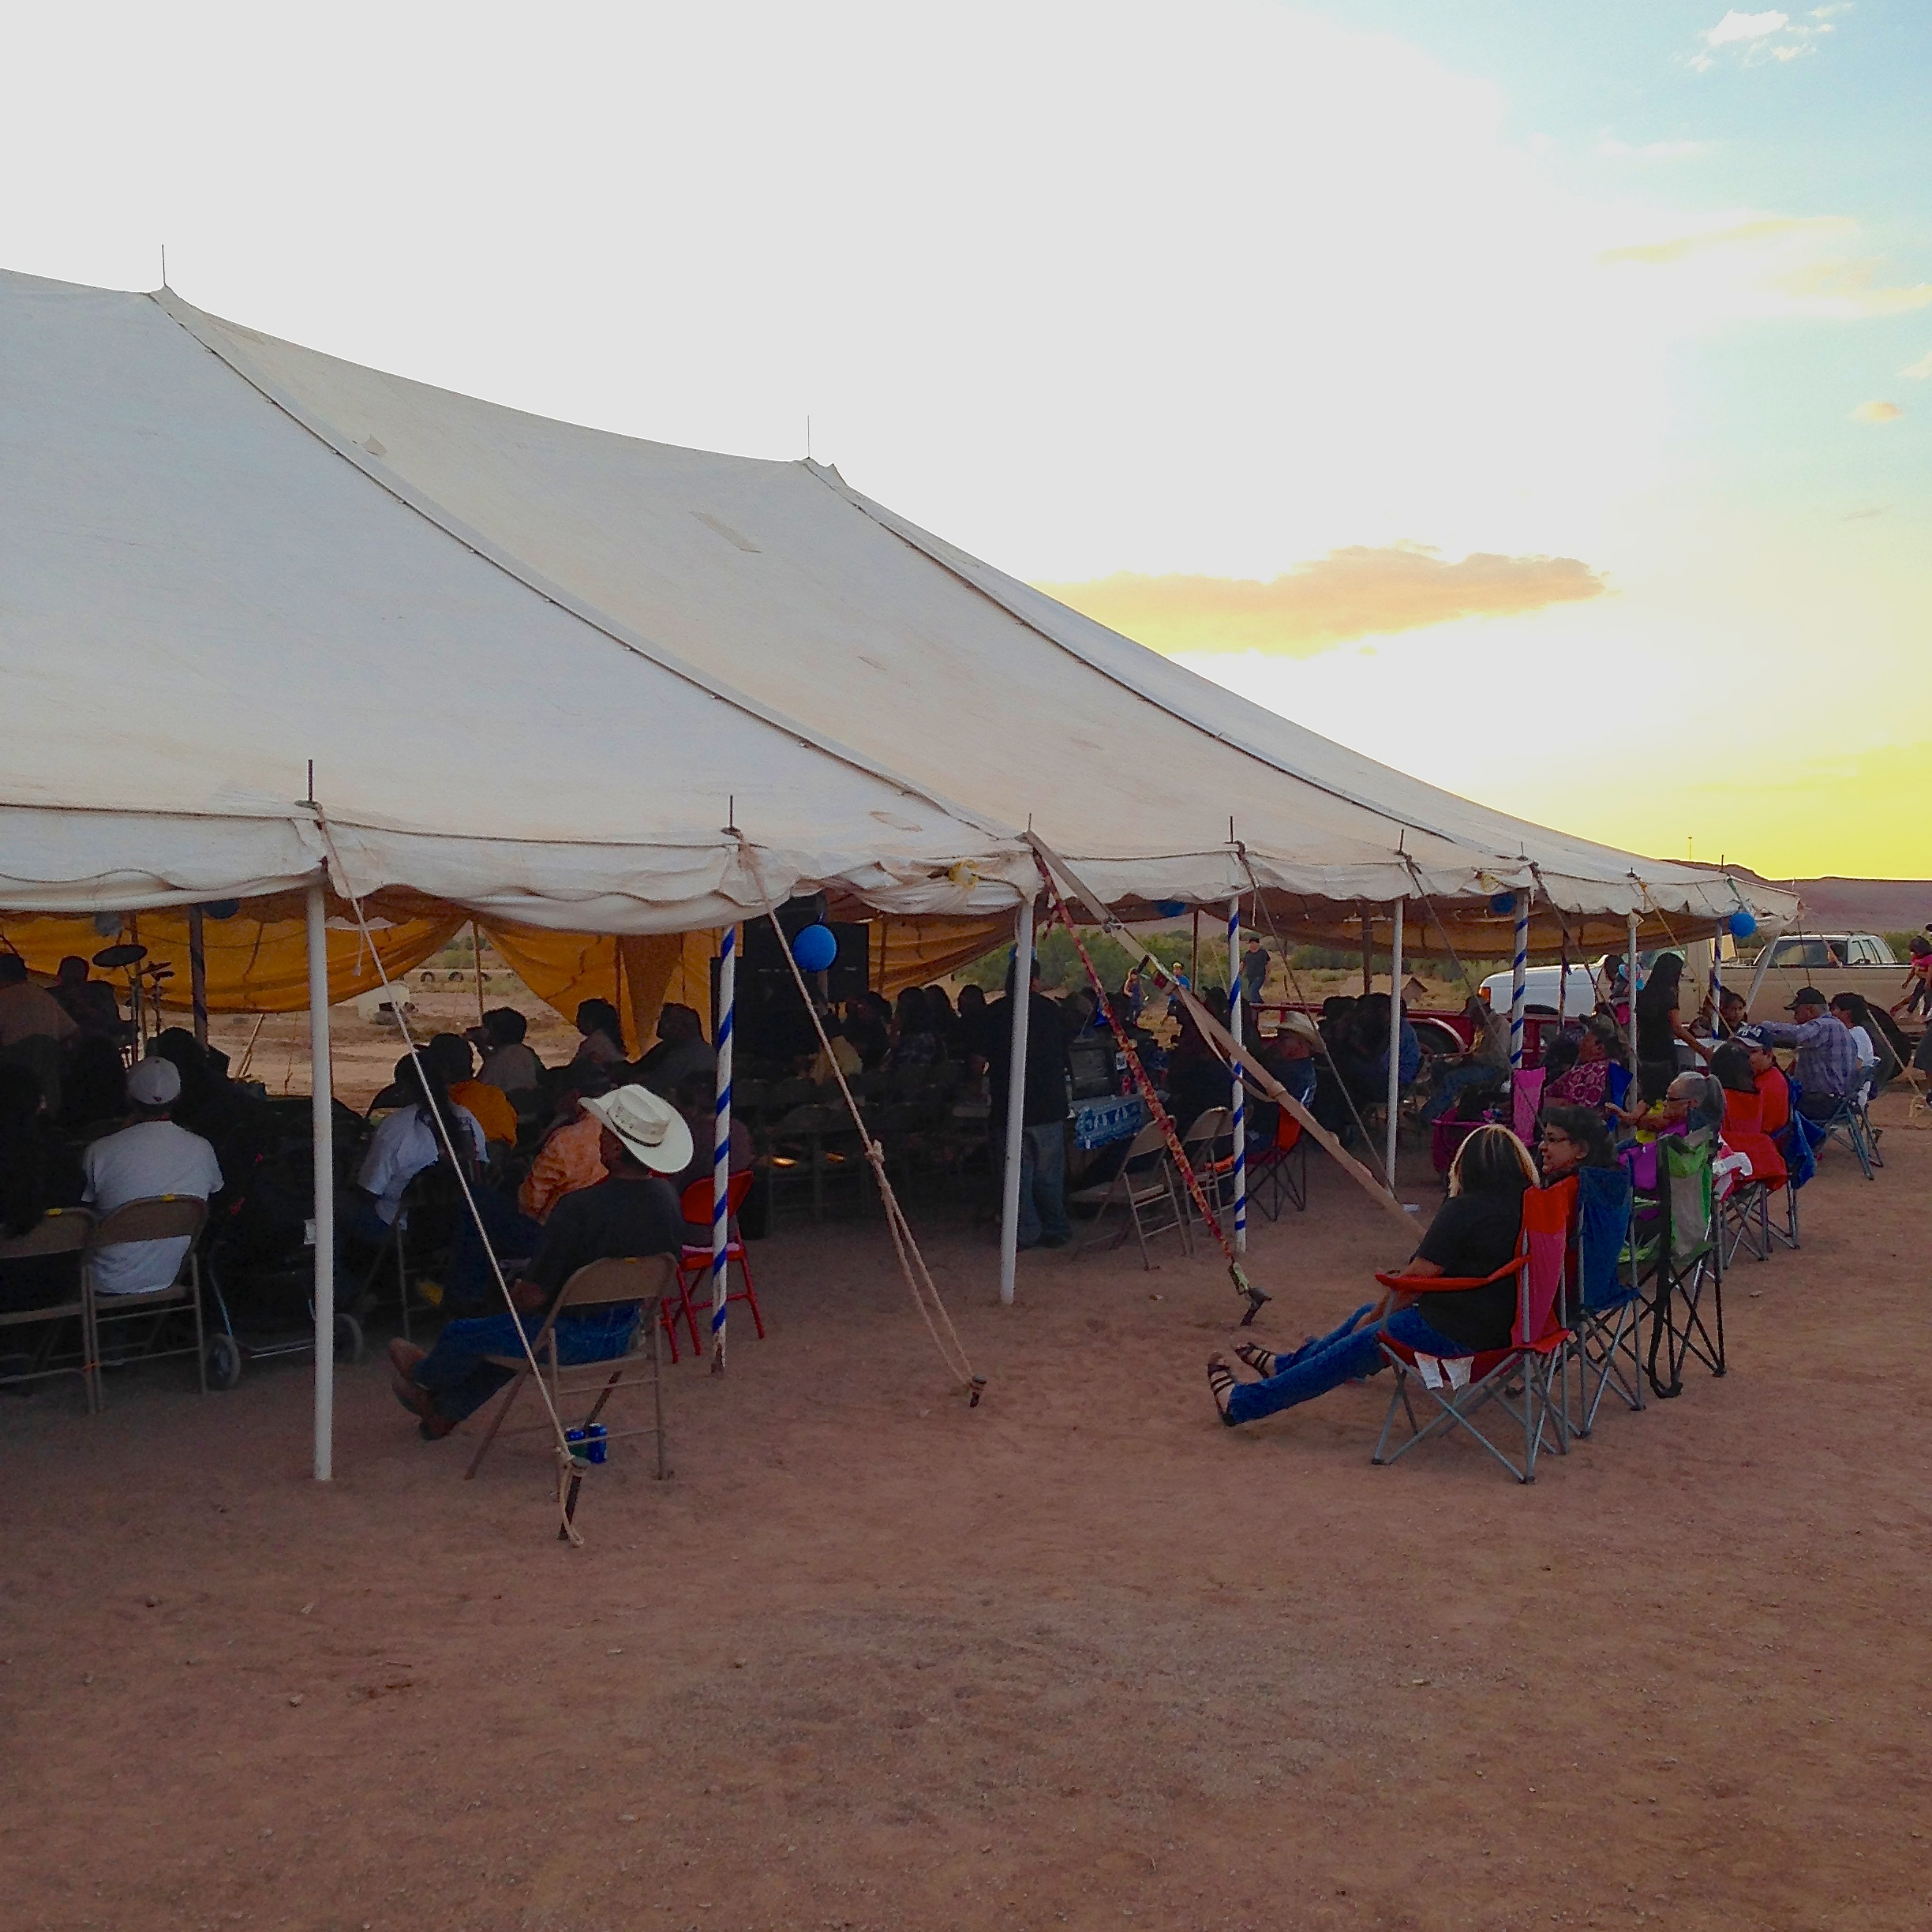 Revival2 & Tent Revivals and Camp Meetings! «